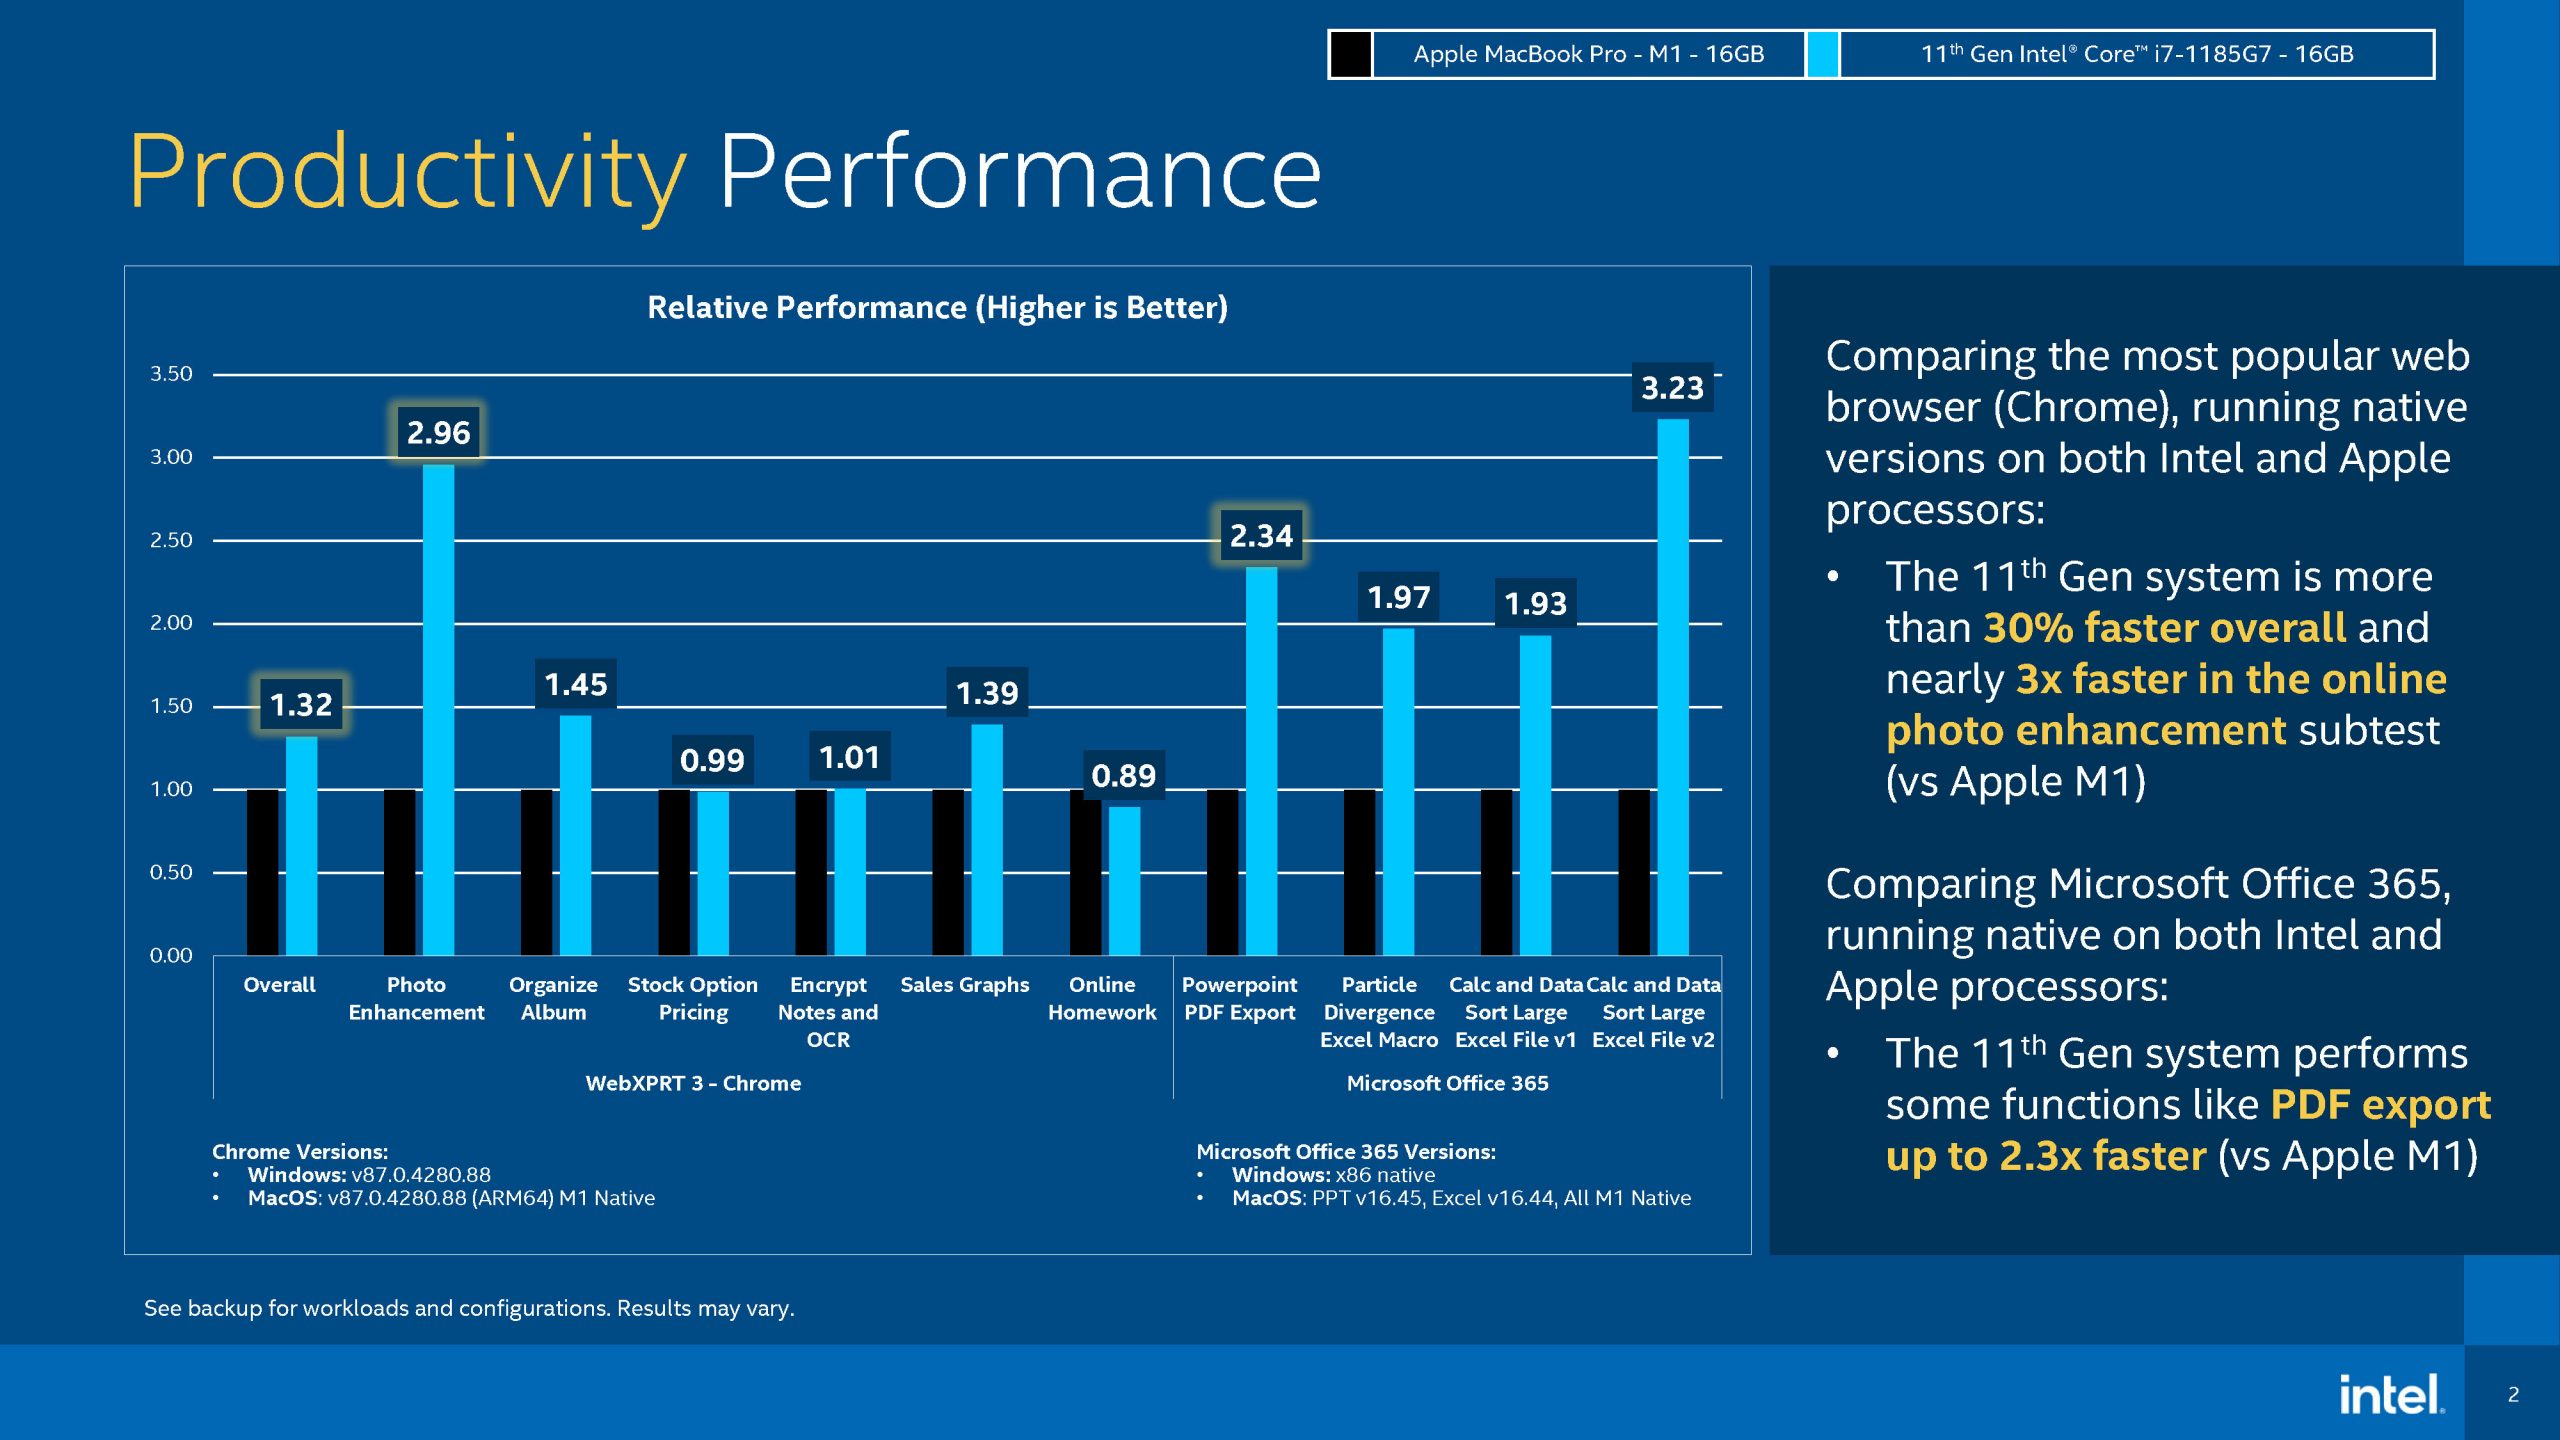 M1 vs Intel productivity performance